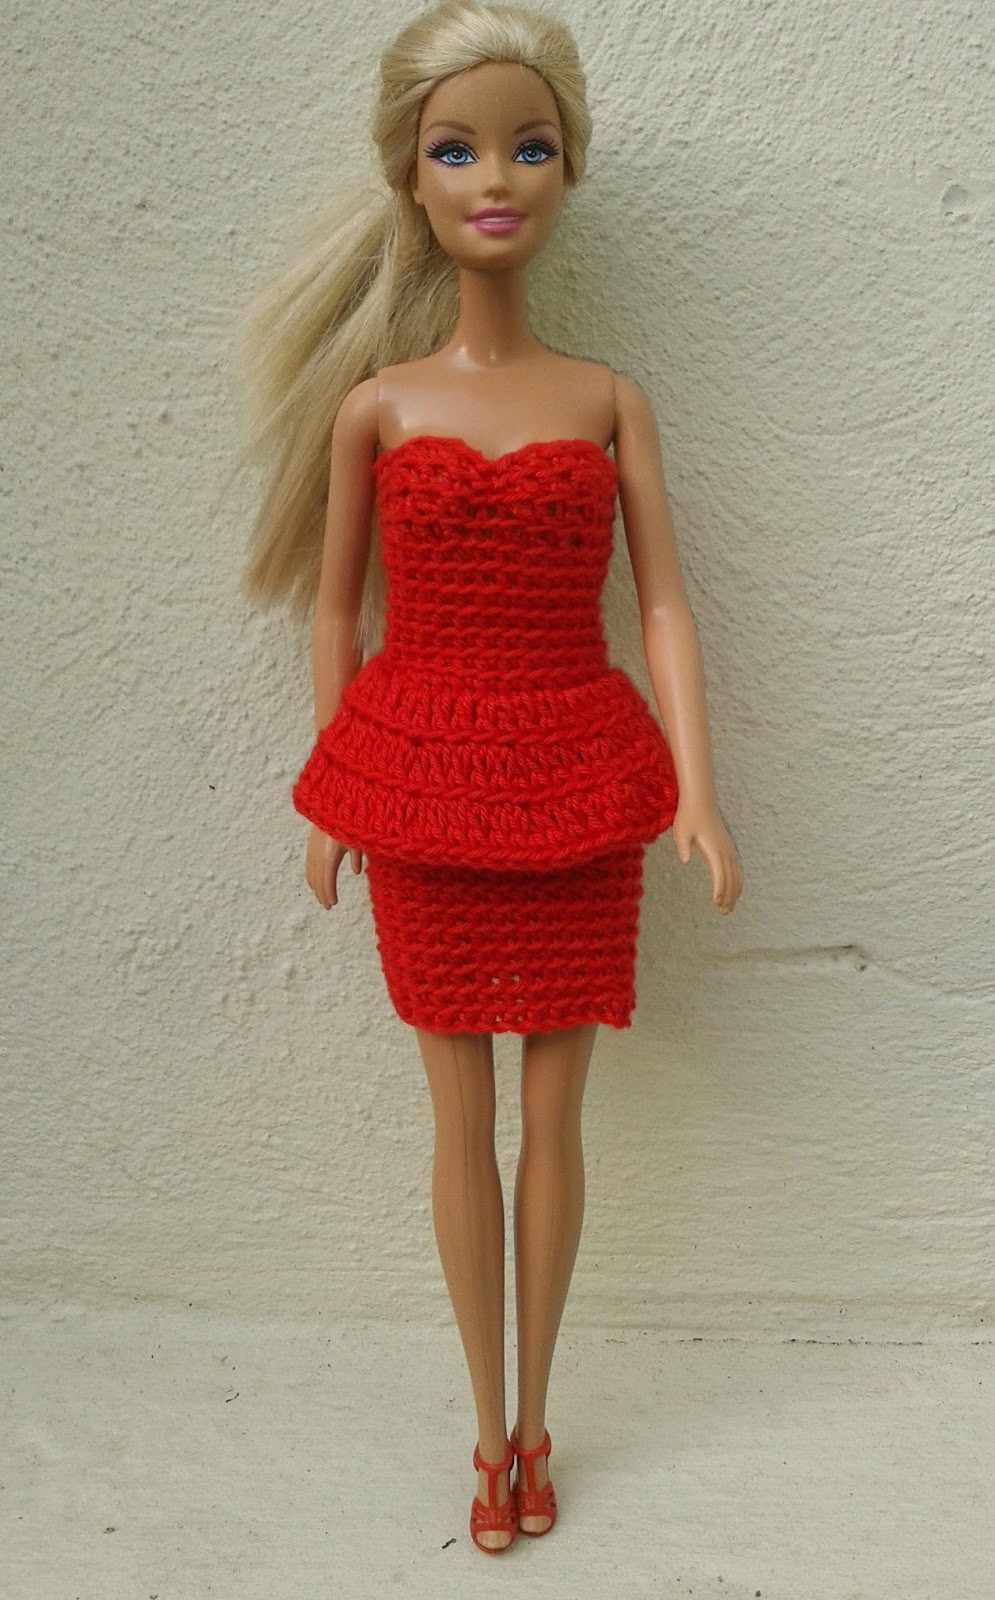 Fresh Linmary Knits Barbie In Red Crochet Dresses Barbie Dress Patterns Of Marvelous 46 Photos Barbie Dress Patterns